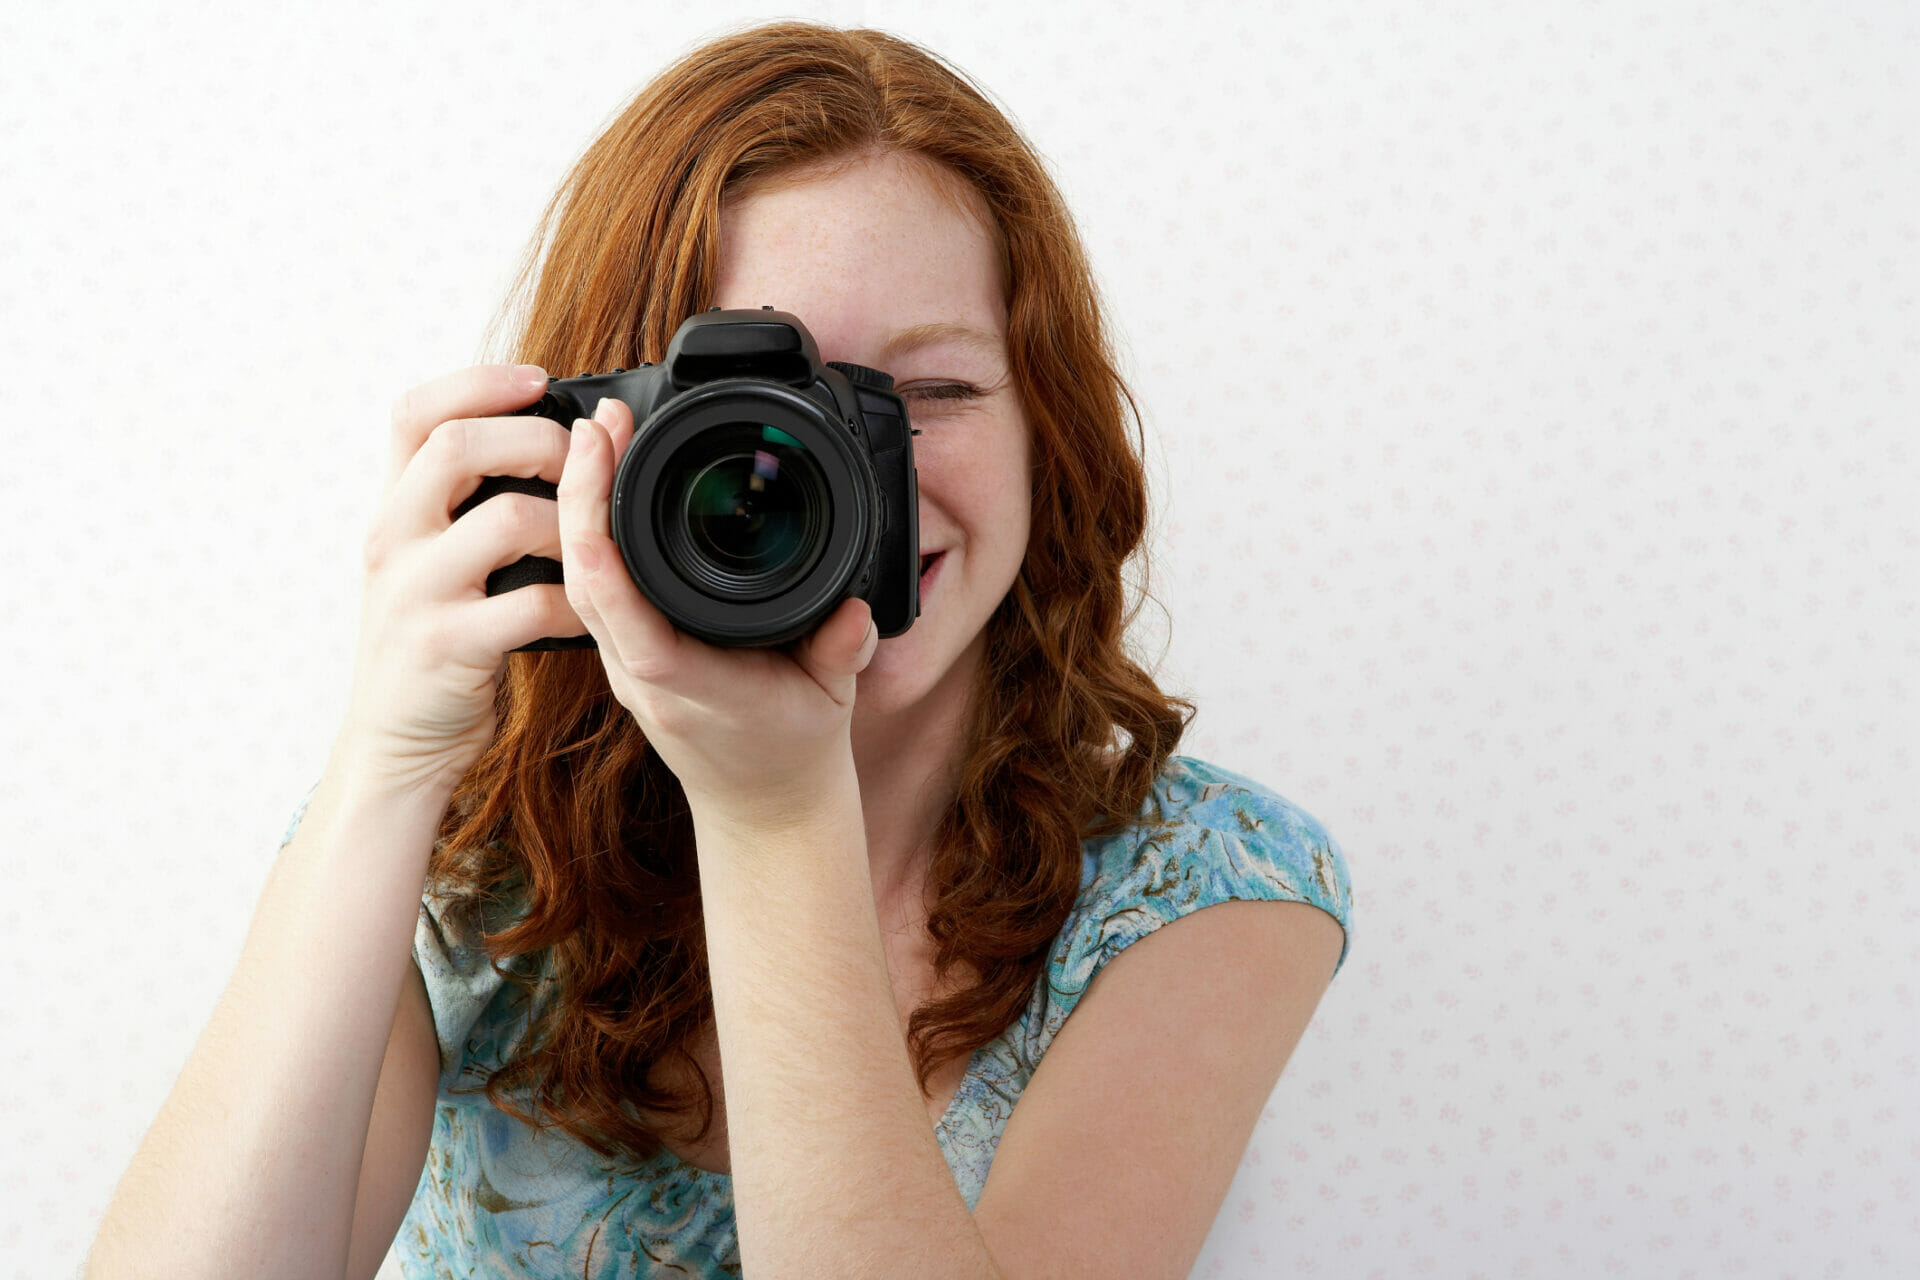 Teenage girl with camera